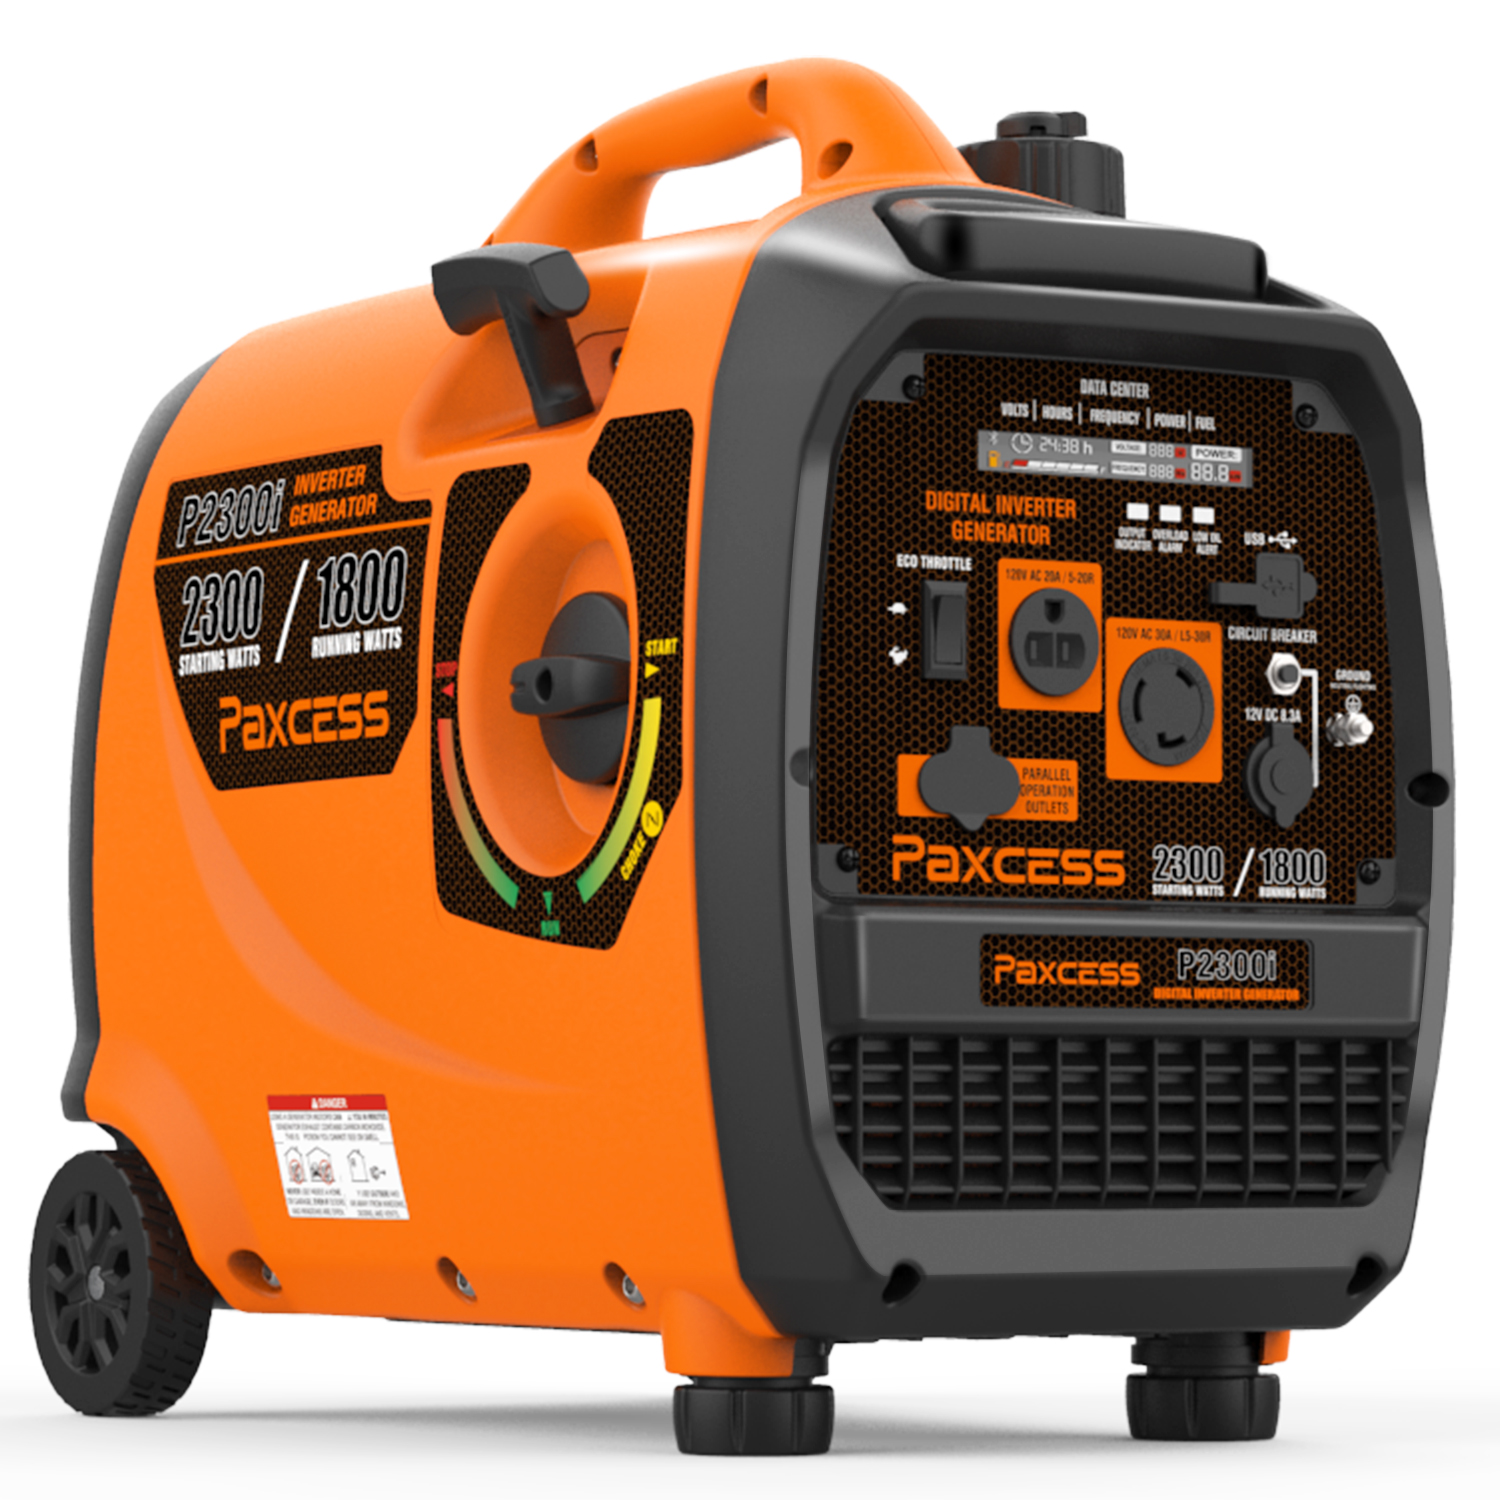 Paxcess Gasoline 2300 Watts Portable Generator Super Quiet Inverter Generator With Wheel and Handle RV /Parallel Ready Generator CARB Complaint For HOME, Camping, Travel, Emergency.